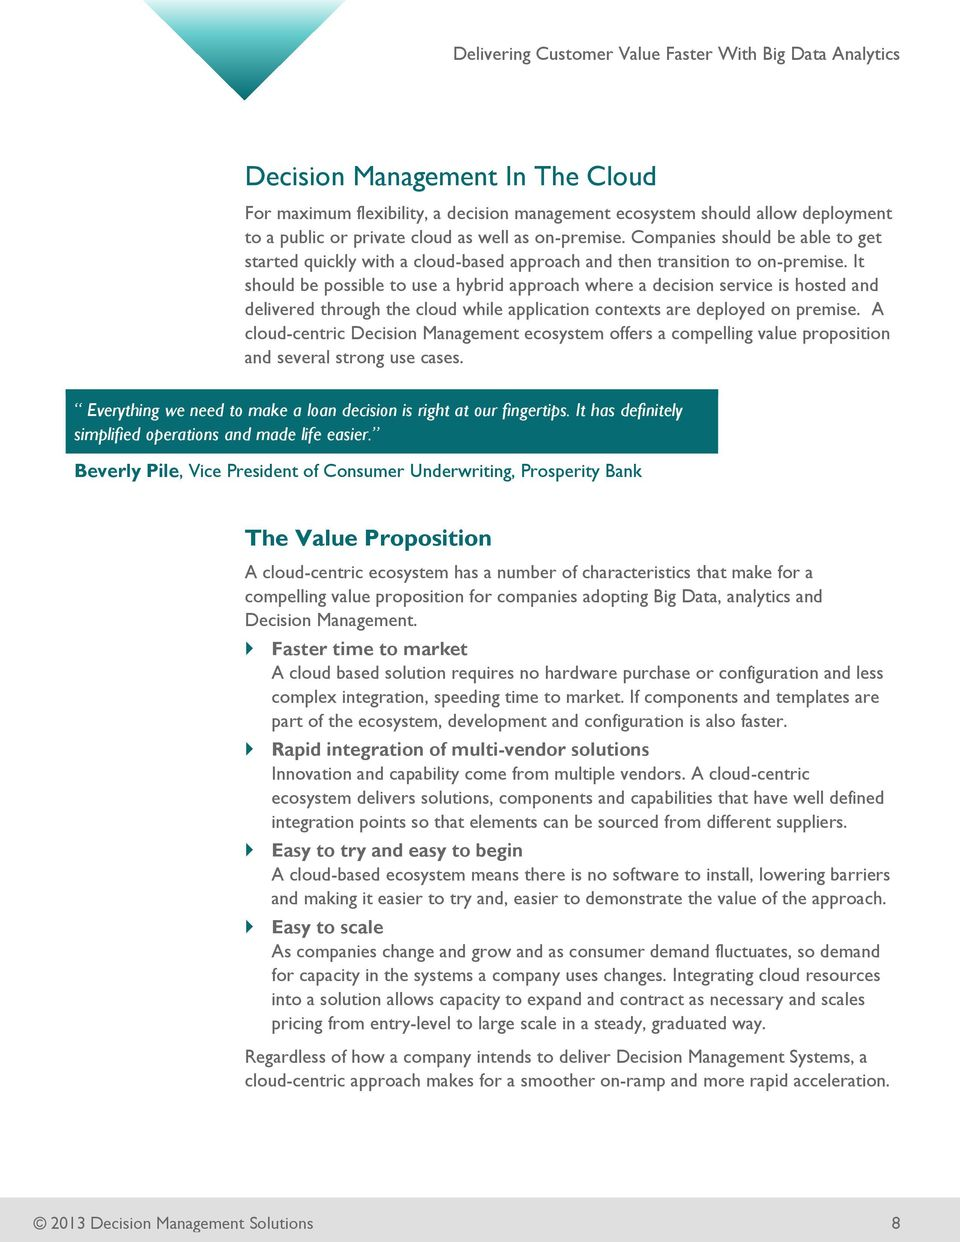 It should be possible to use a hybrid approach where a decision service is hosted and delivered through the cloud while application contexts are deployed on premise.